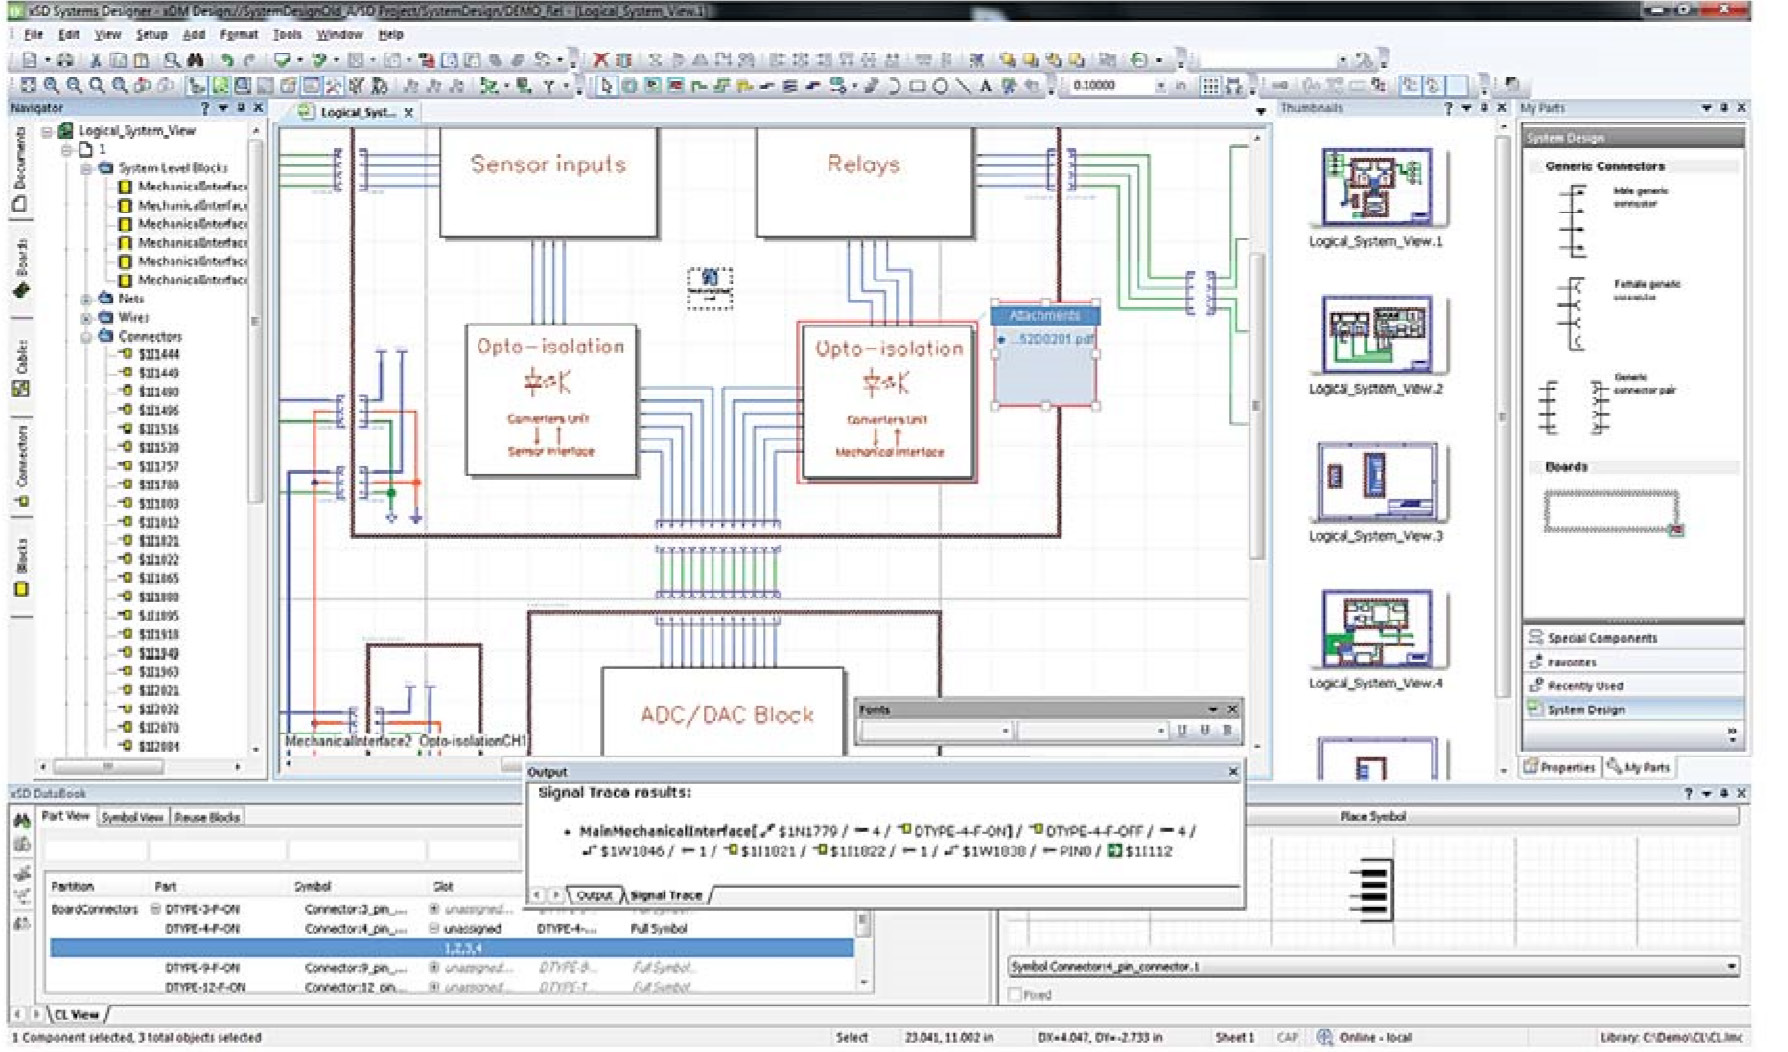 Multi Board Pcb Systems Design Mentor Graphics Structural Analysis Of Printed Circuit Mechanical System Definition